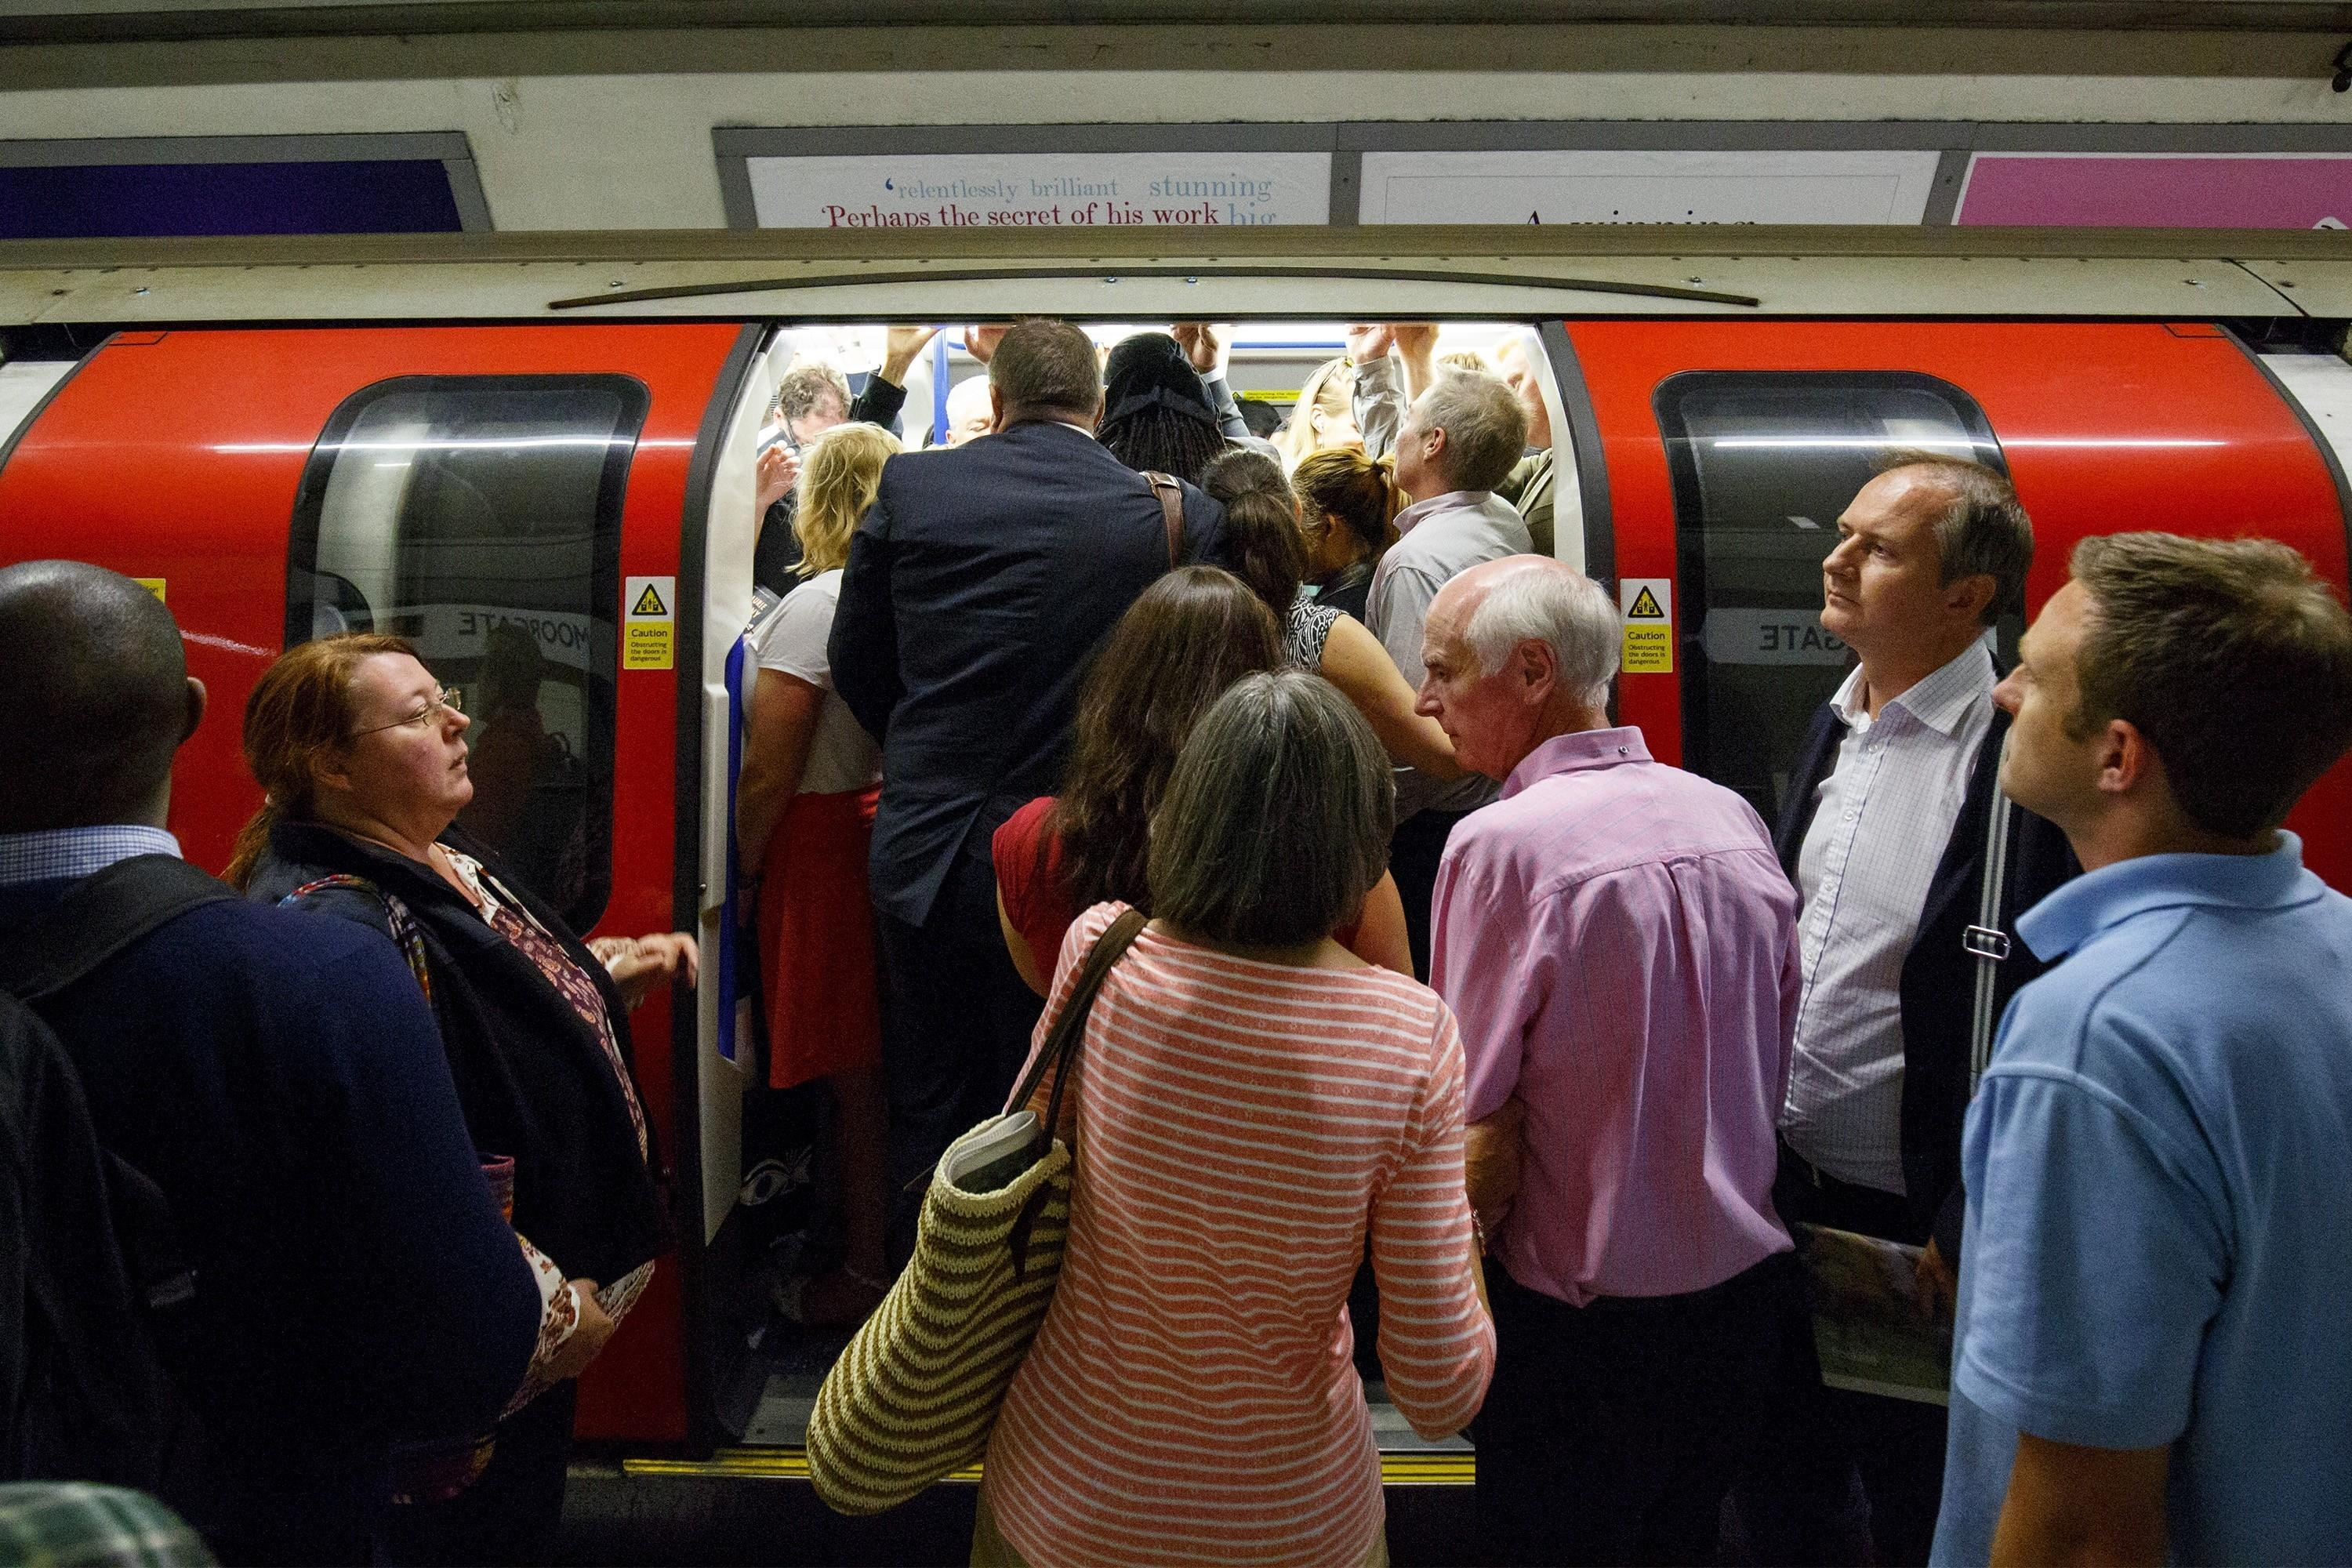 Commuters set to face fare hikes and get stuck with ageing Tube trains in effort to plug £1BILLION TfL cash black hole